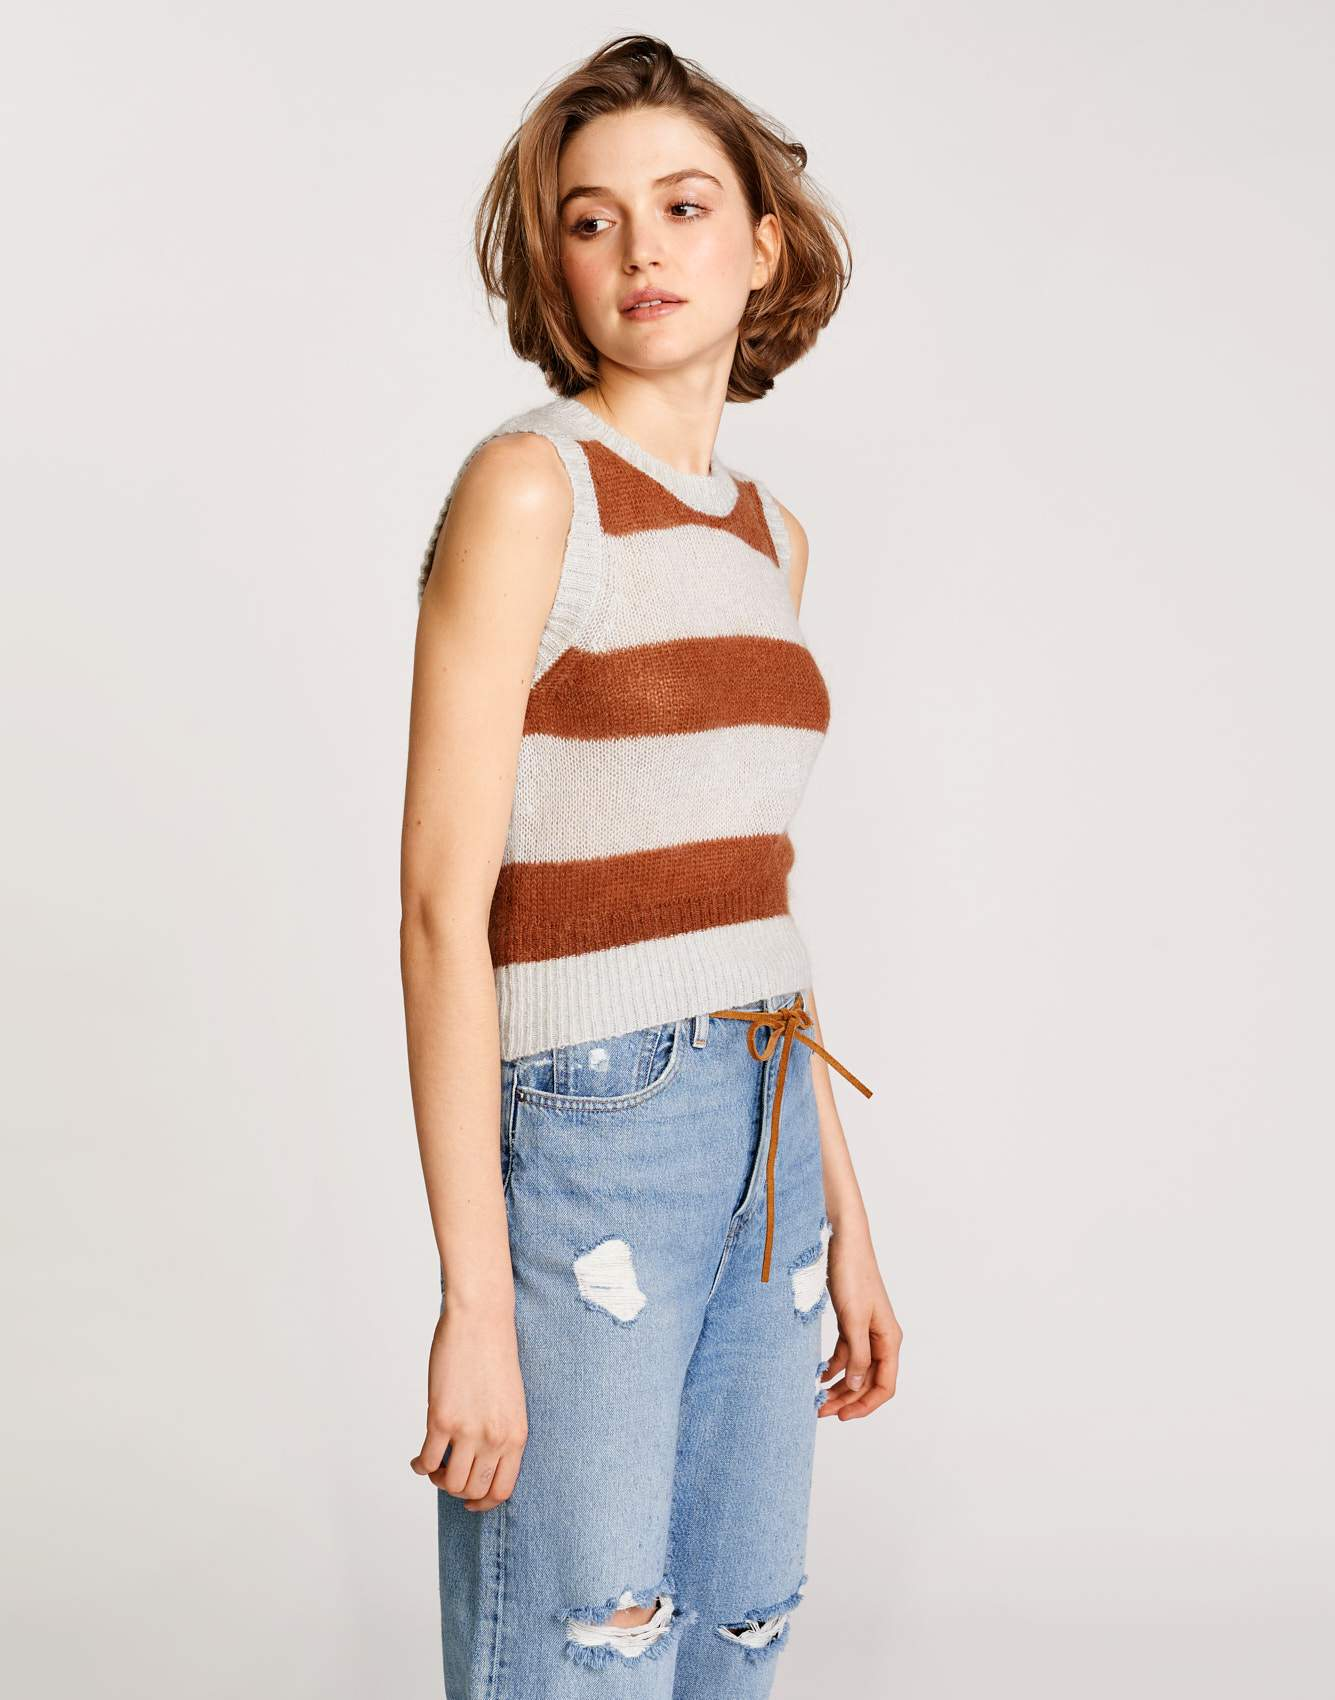 Bellerose cotton and mohair blend knitwear for women